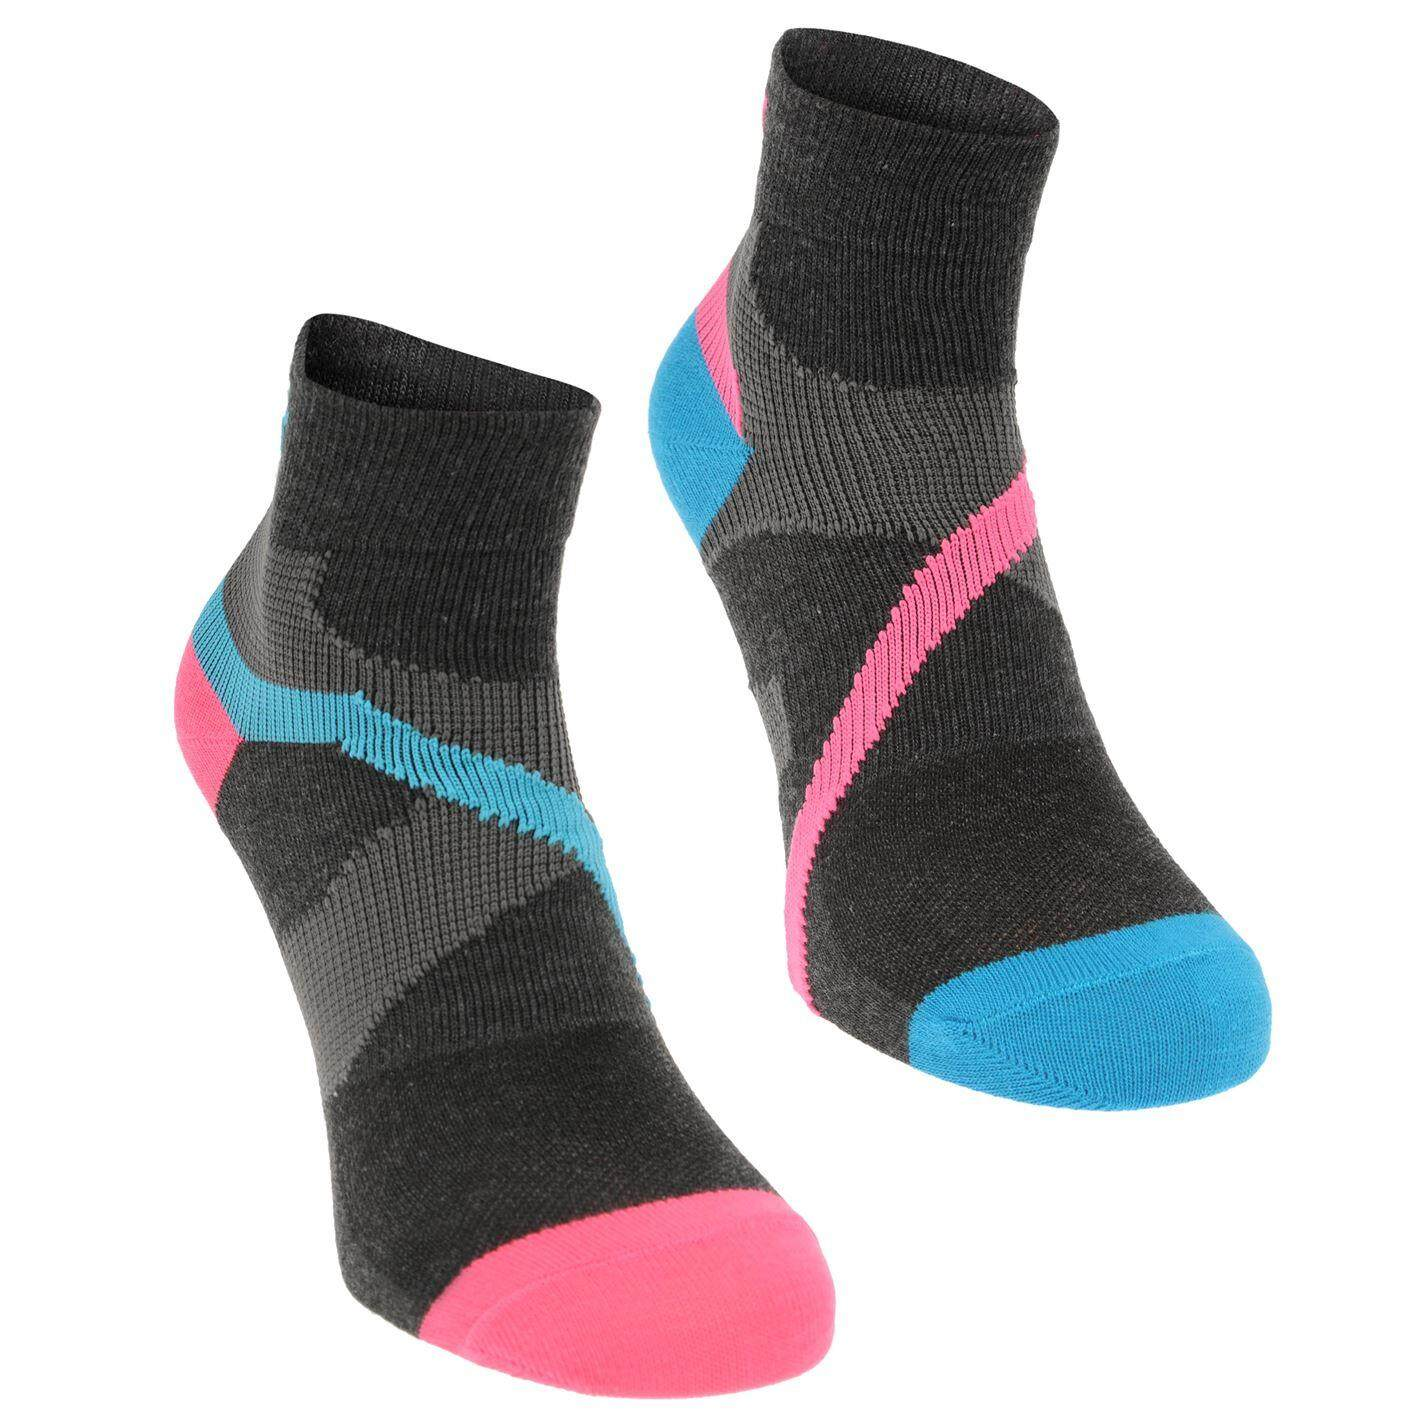 Karrimor Womens Support Quarter Socks 2 Pack (blk/pink/blue) By Sports Direct Mst Sdn Bhd.